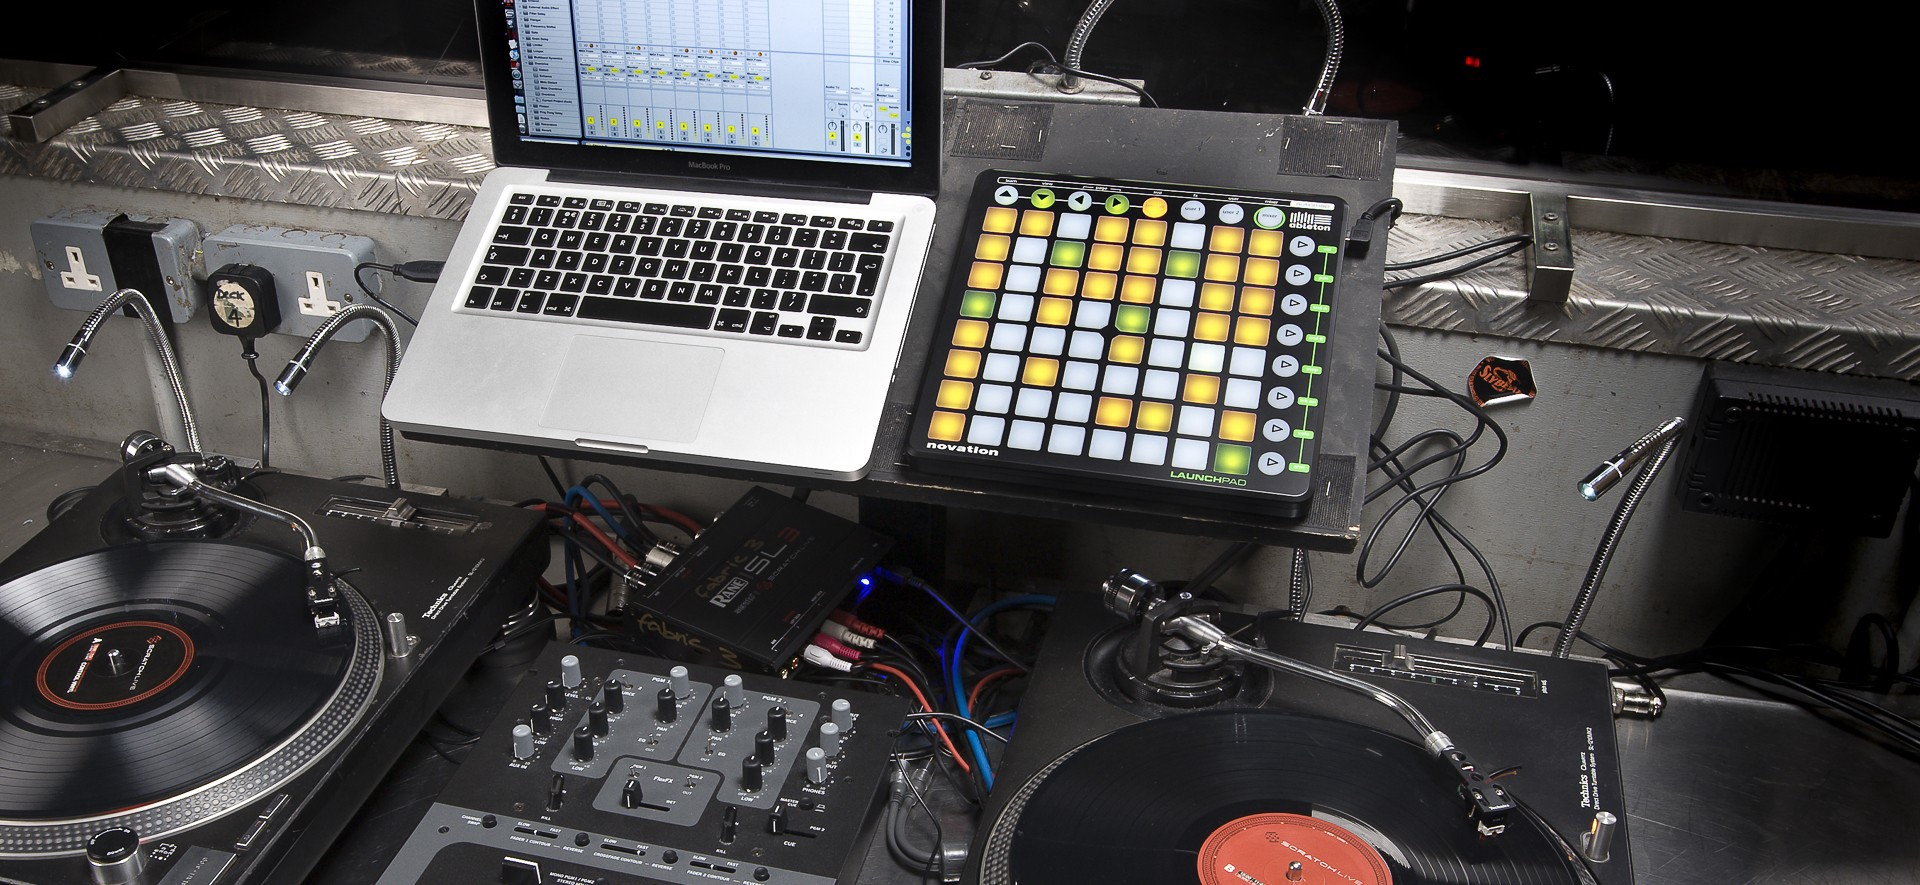 Launchpad: If We Build It, They Will Come - Novation